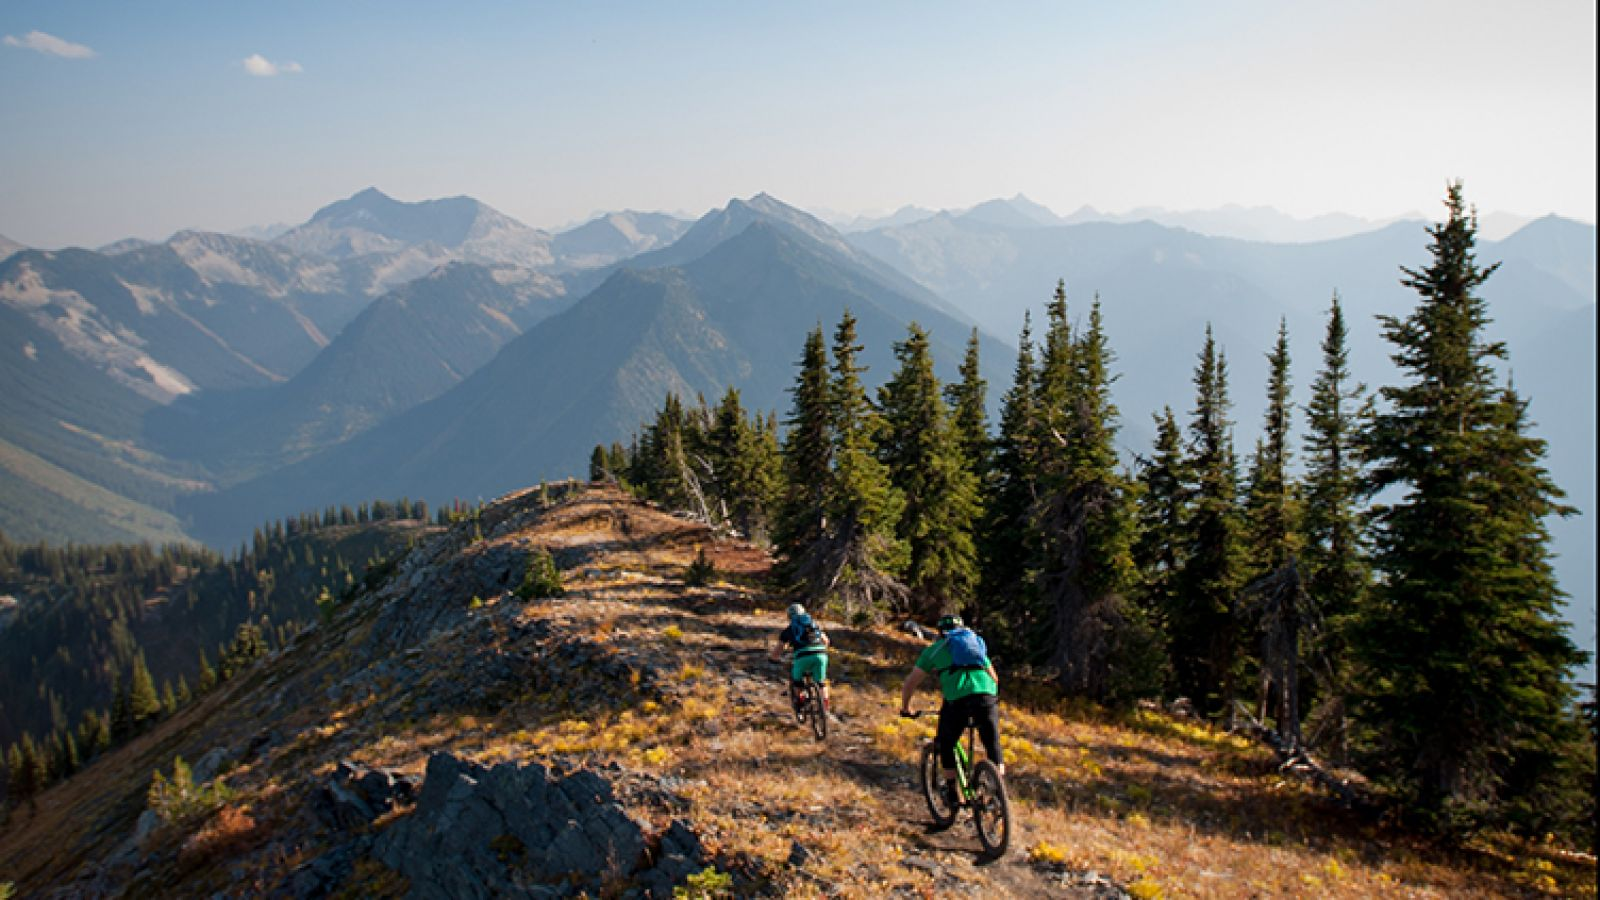 Biking in the Selkirk Mountains.